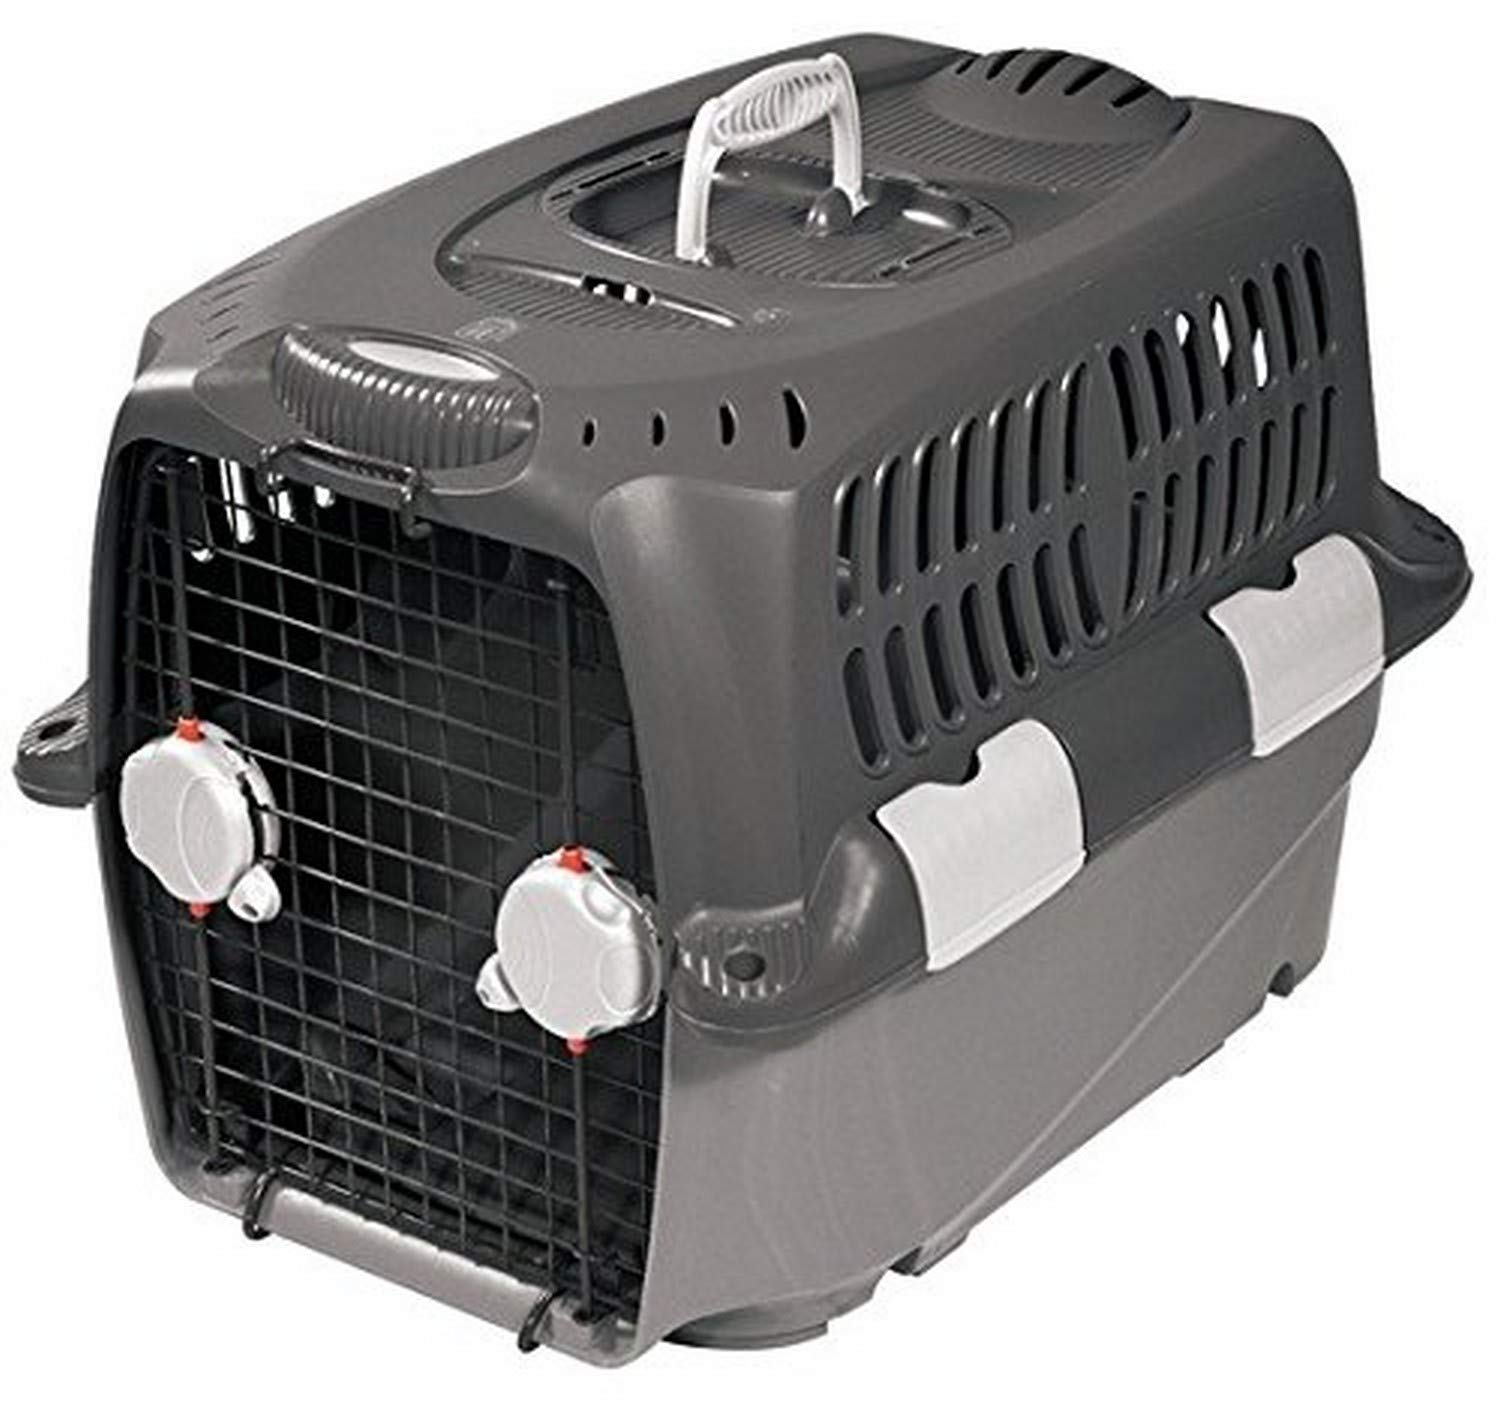 Dogit Cargo Dog Carrier